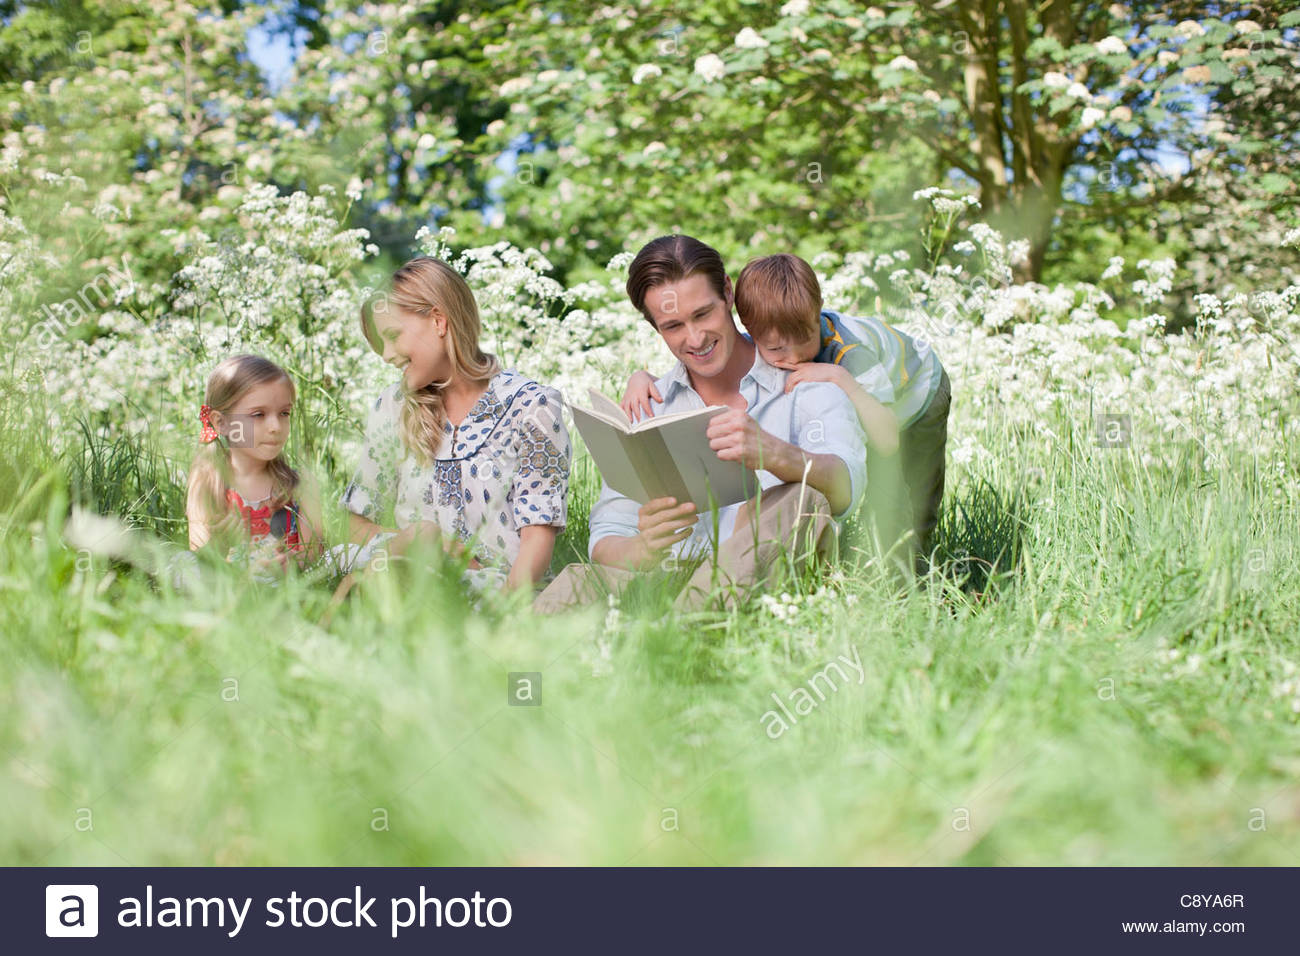 Family relaxing together in grass - Stock Image